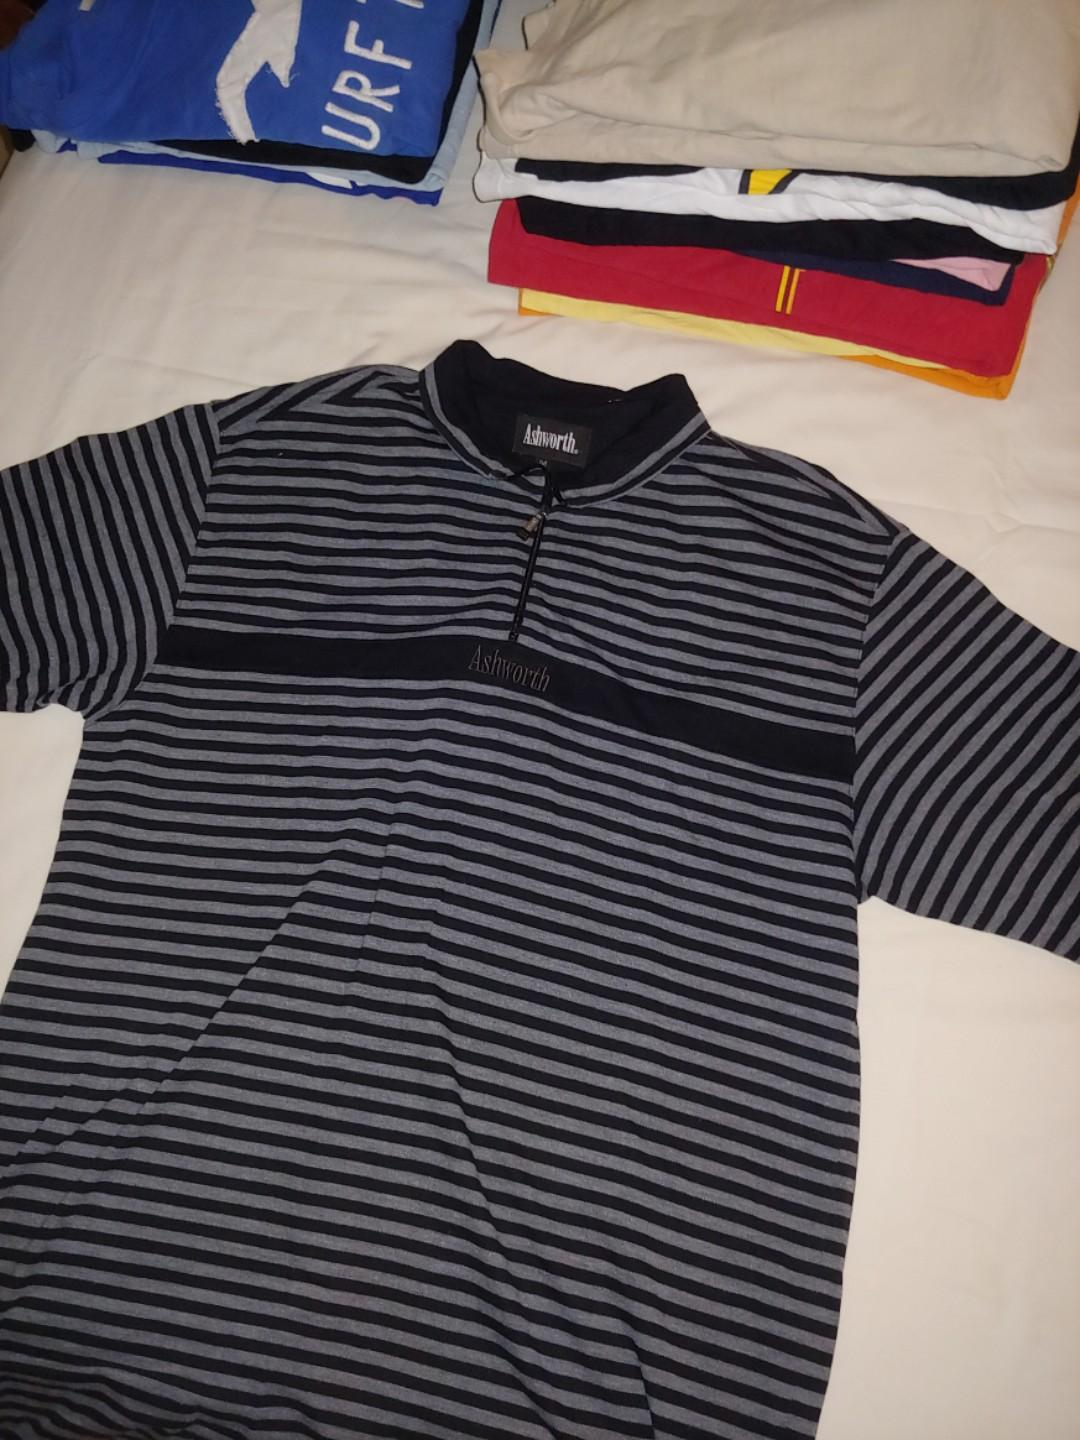 Ashworth Men's  Polo Shirt XL Extra Large Navy Blue And Black Striped